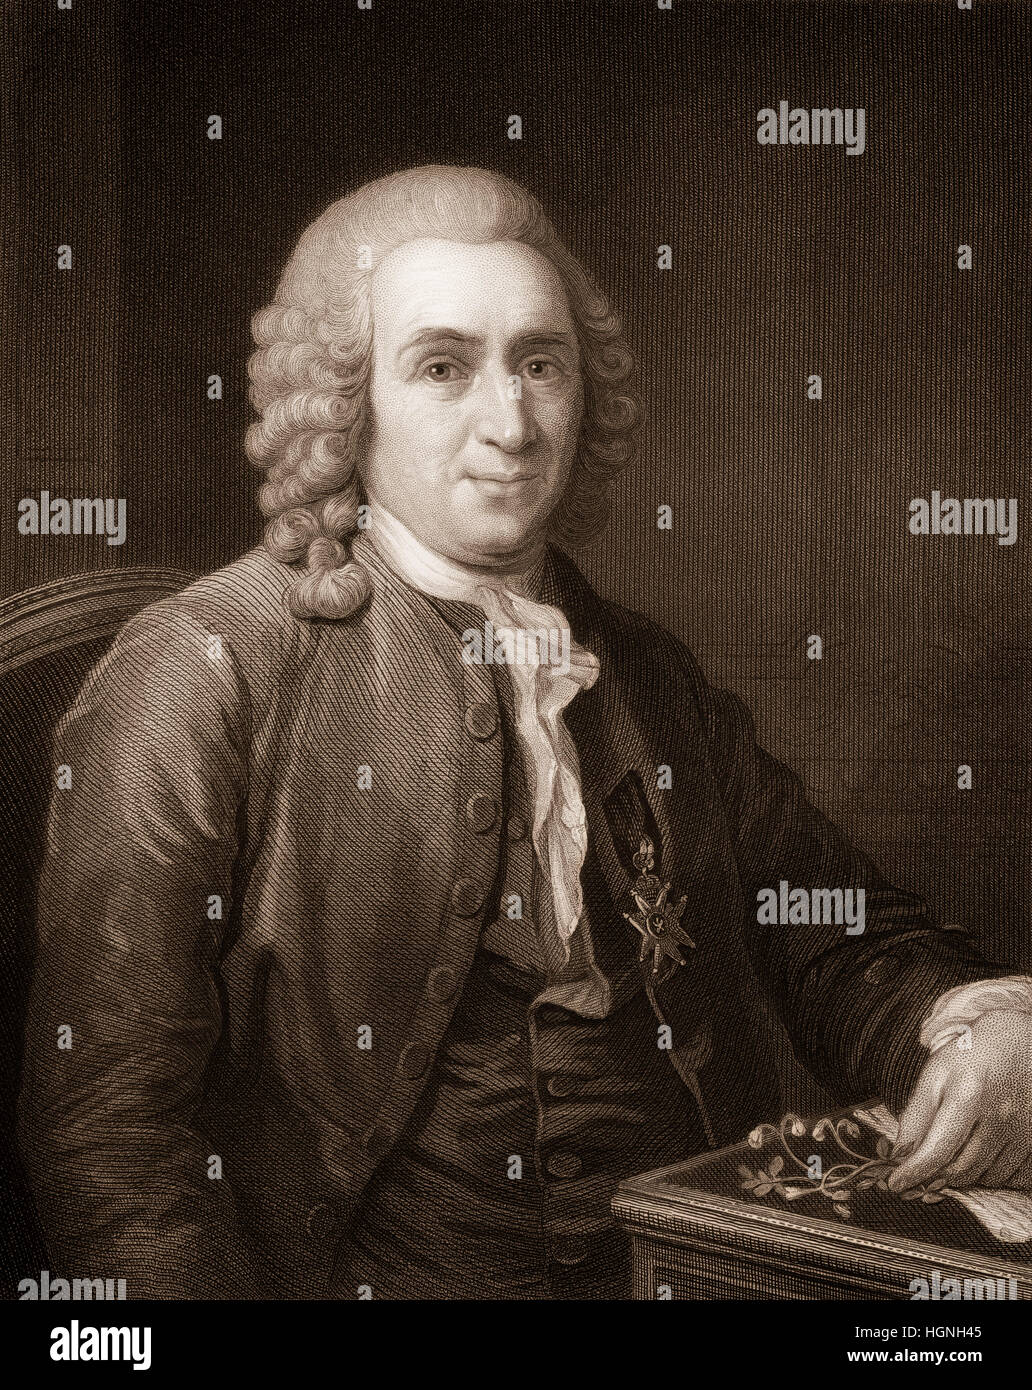 Carl Linnaeus,  or Carl von Linné, 1707-1778, a Swedish botanist, physician, and zoologist, Carl von Linné, - Stock Image